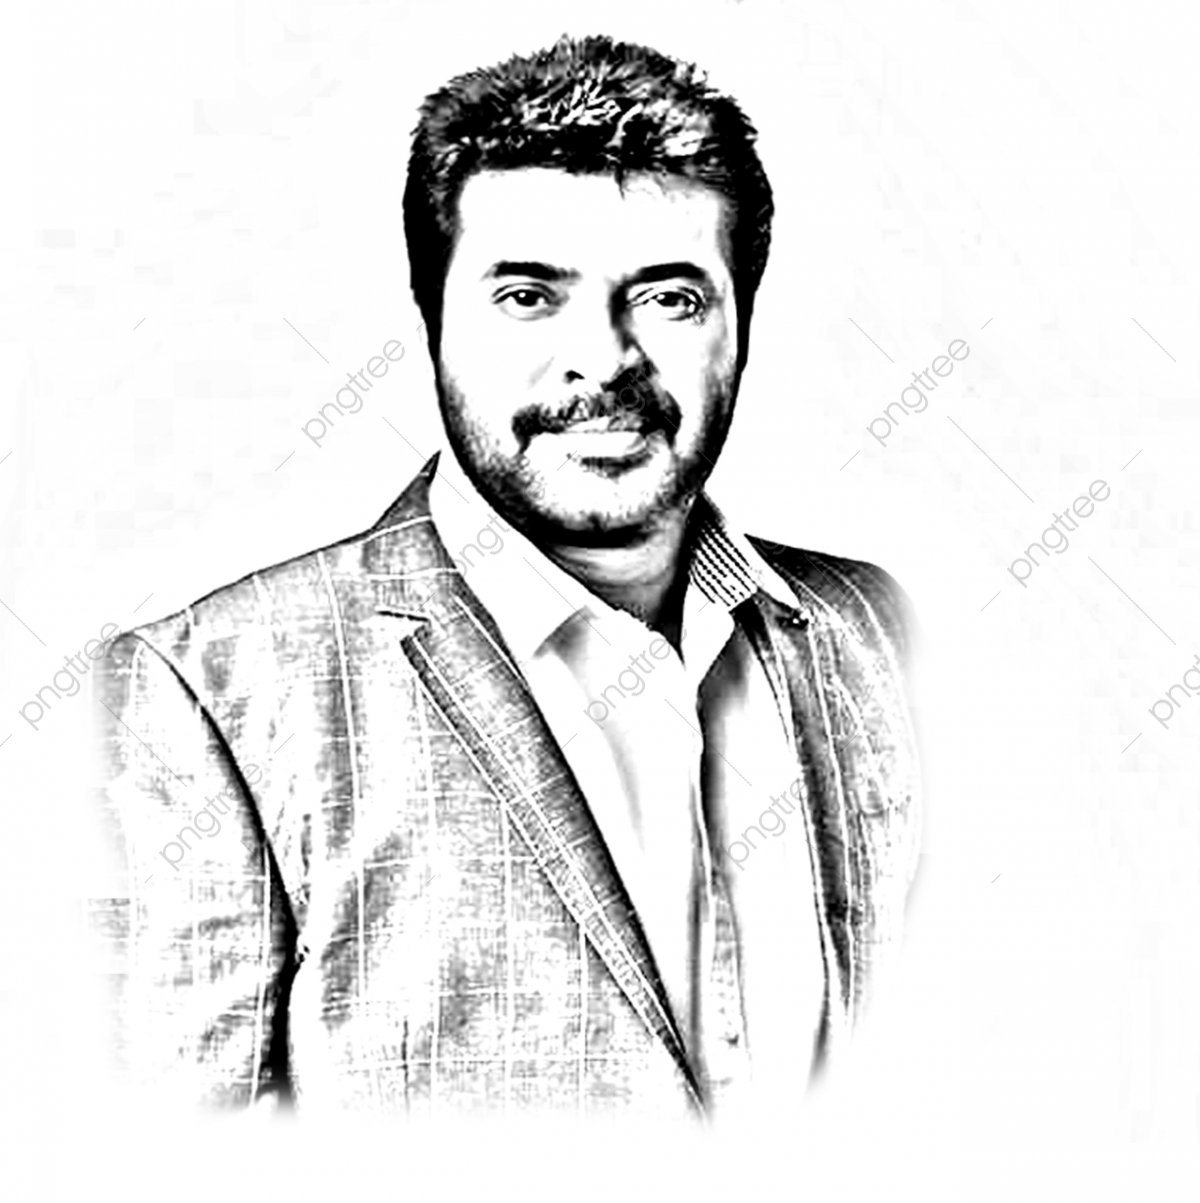 Mammootty Malayalam Actors Actors Png Transparent Clipart Image And Psd File For Free Download